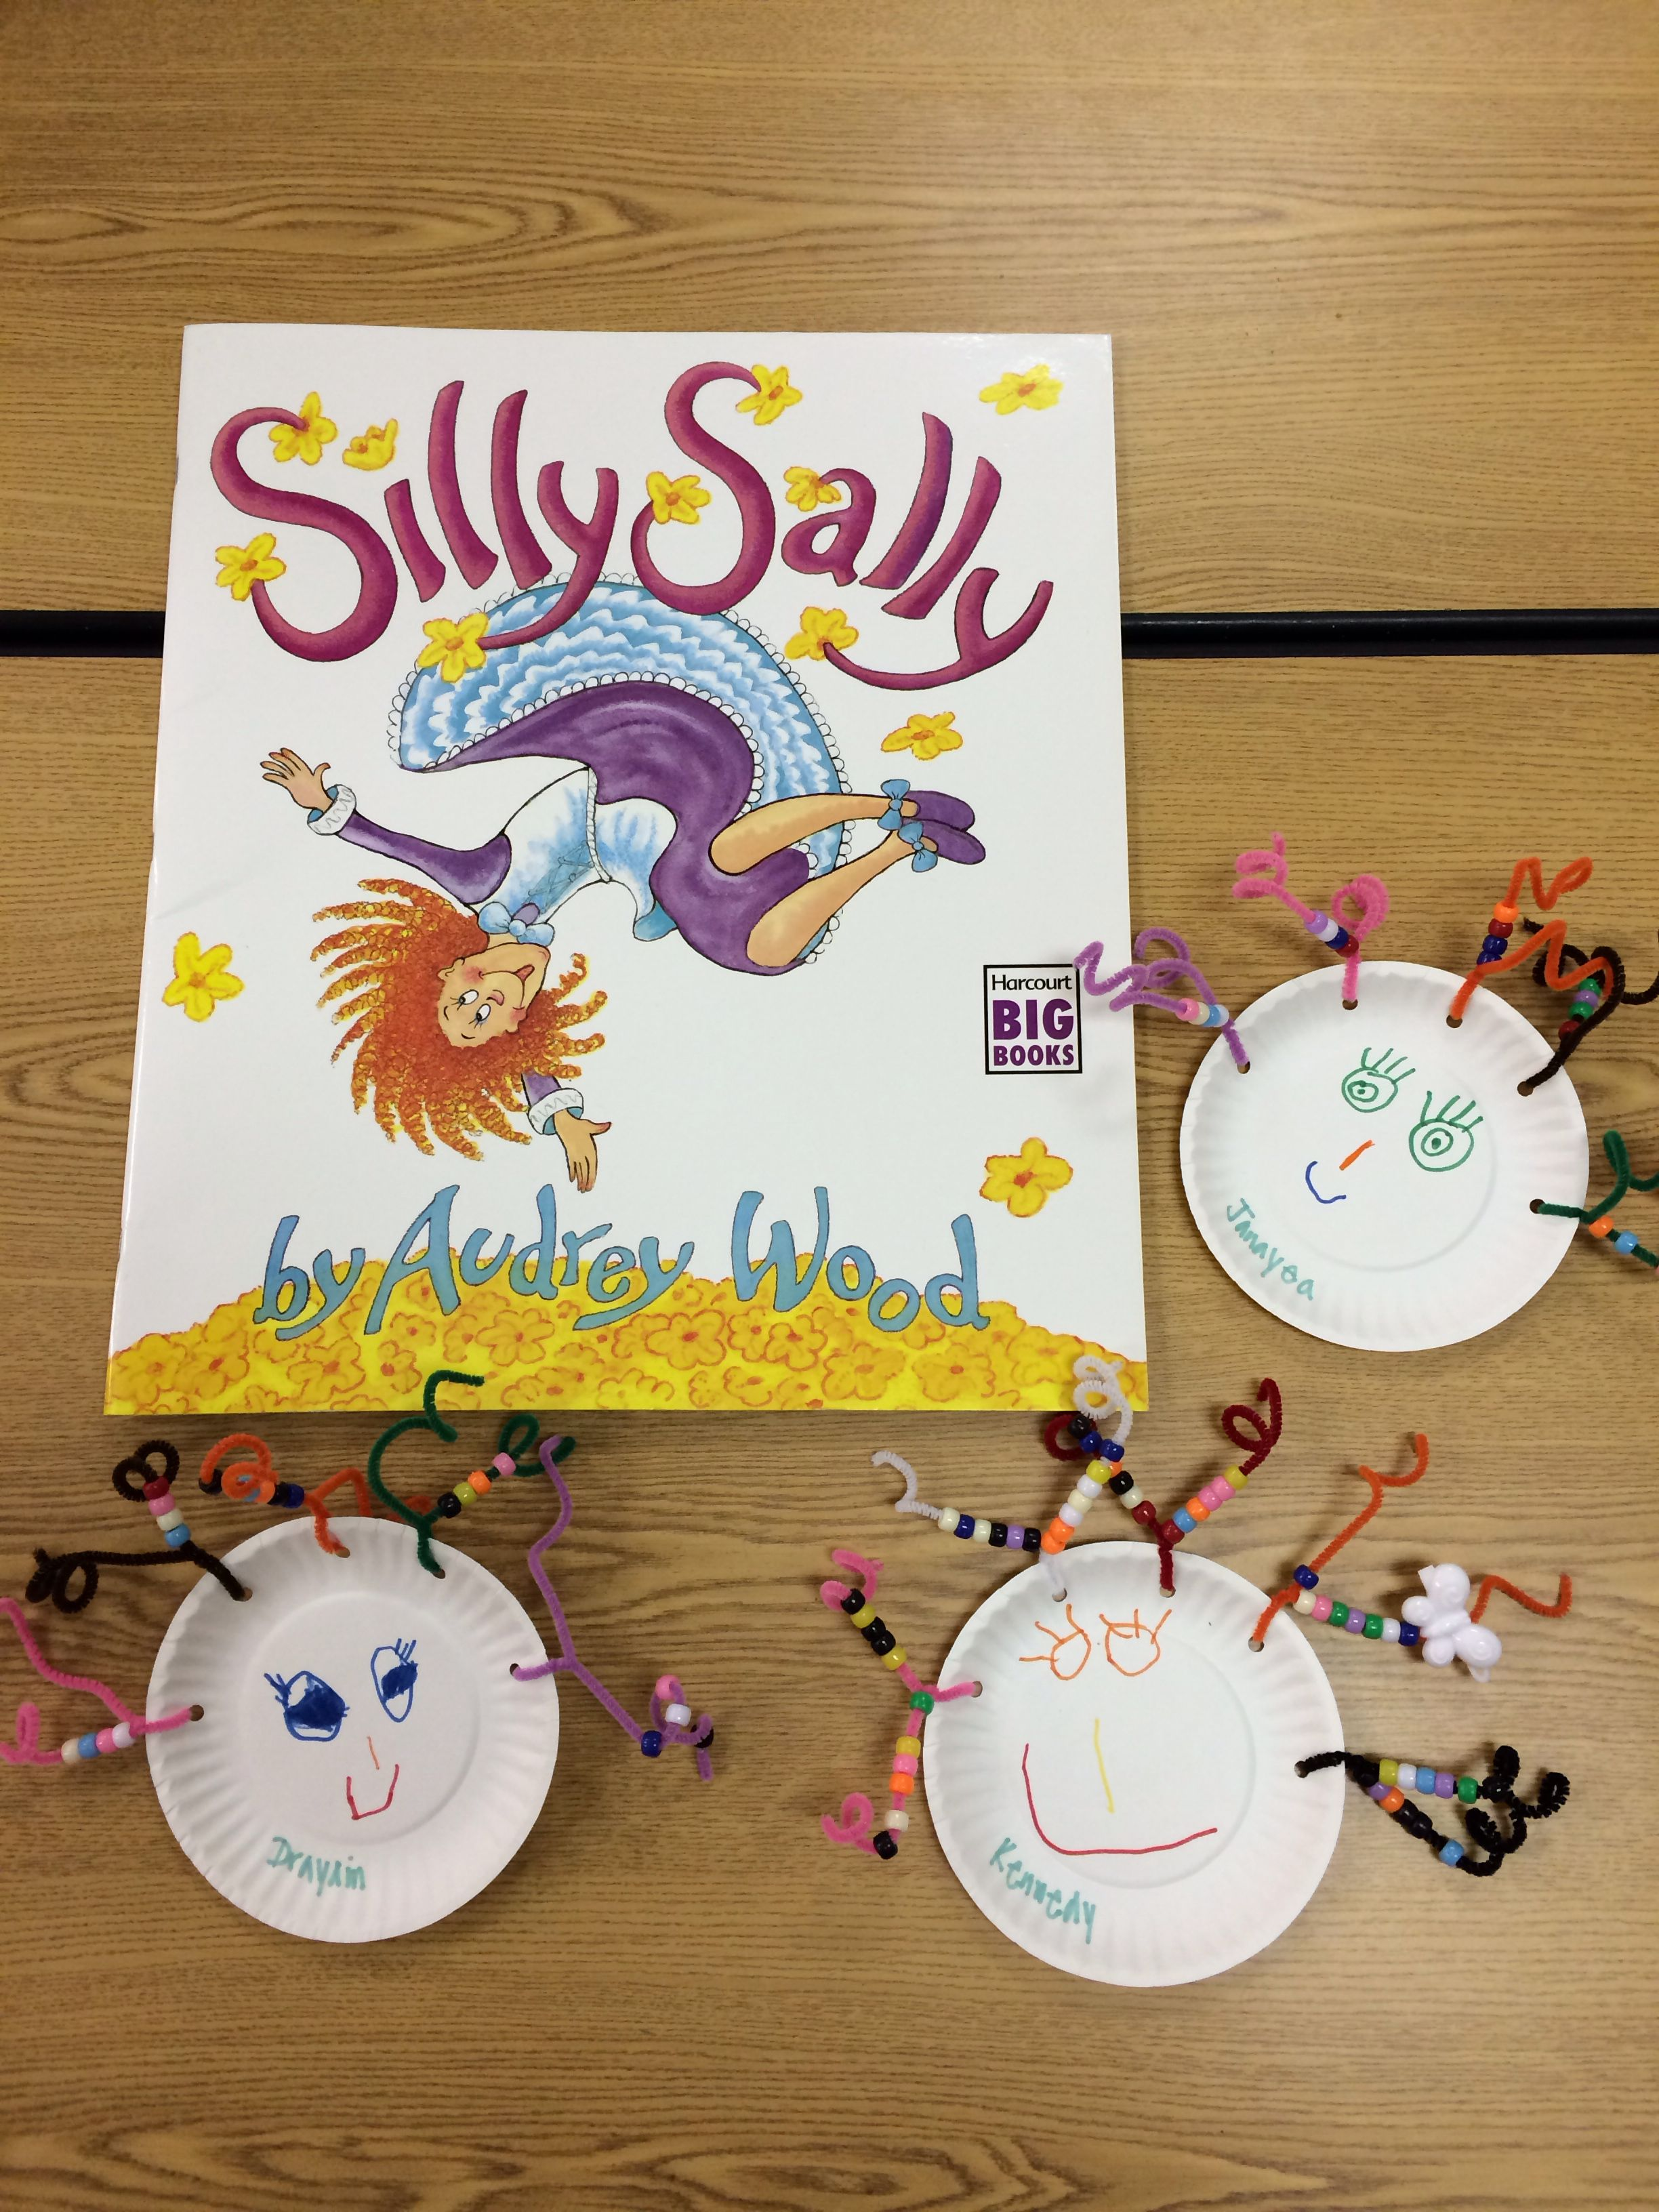 Silly Sally Preschool Art Project